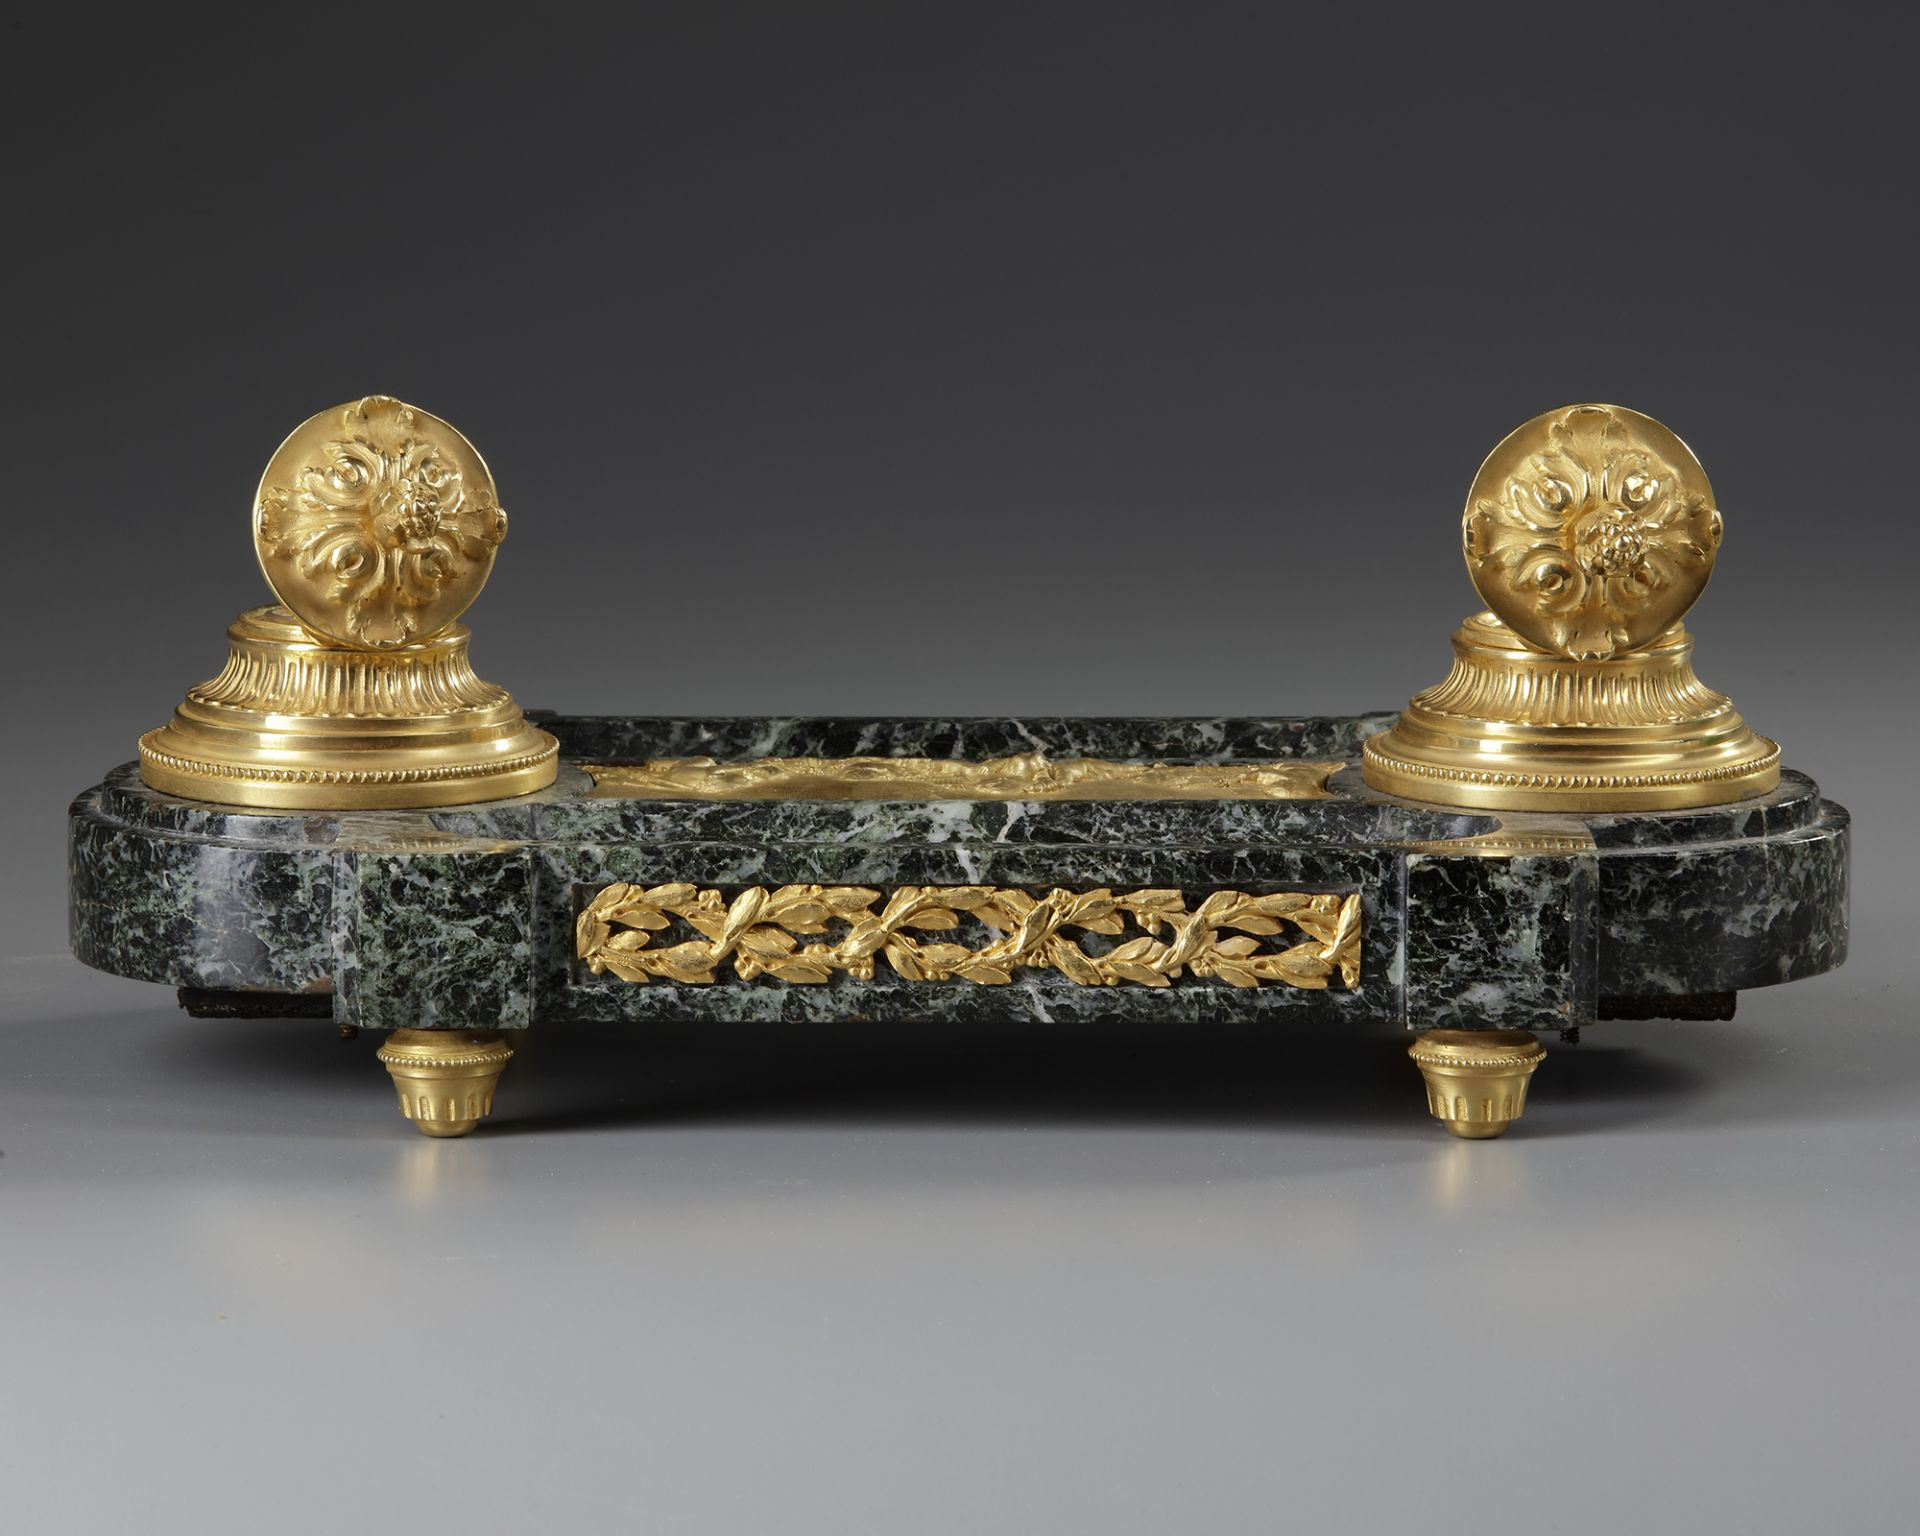 AN 'EMPIRE STYLE' INKWELL IN GILT BRONZE, 19TH CENTURY - Image 2 of 3